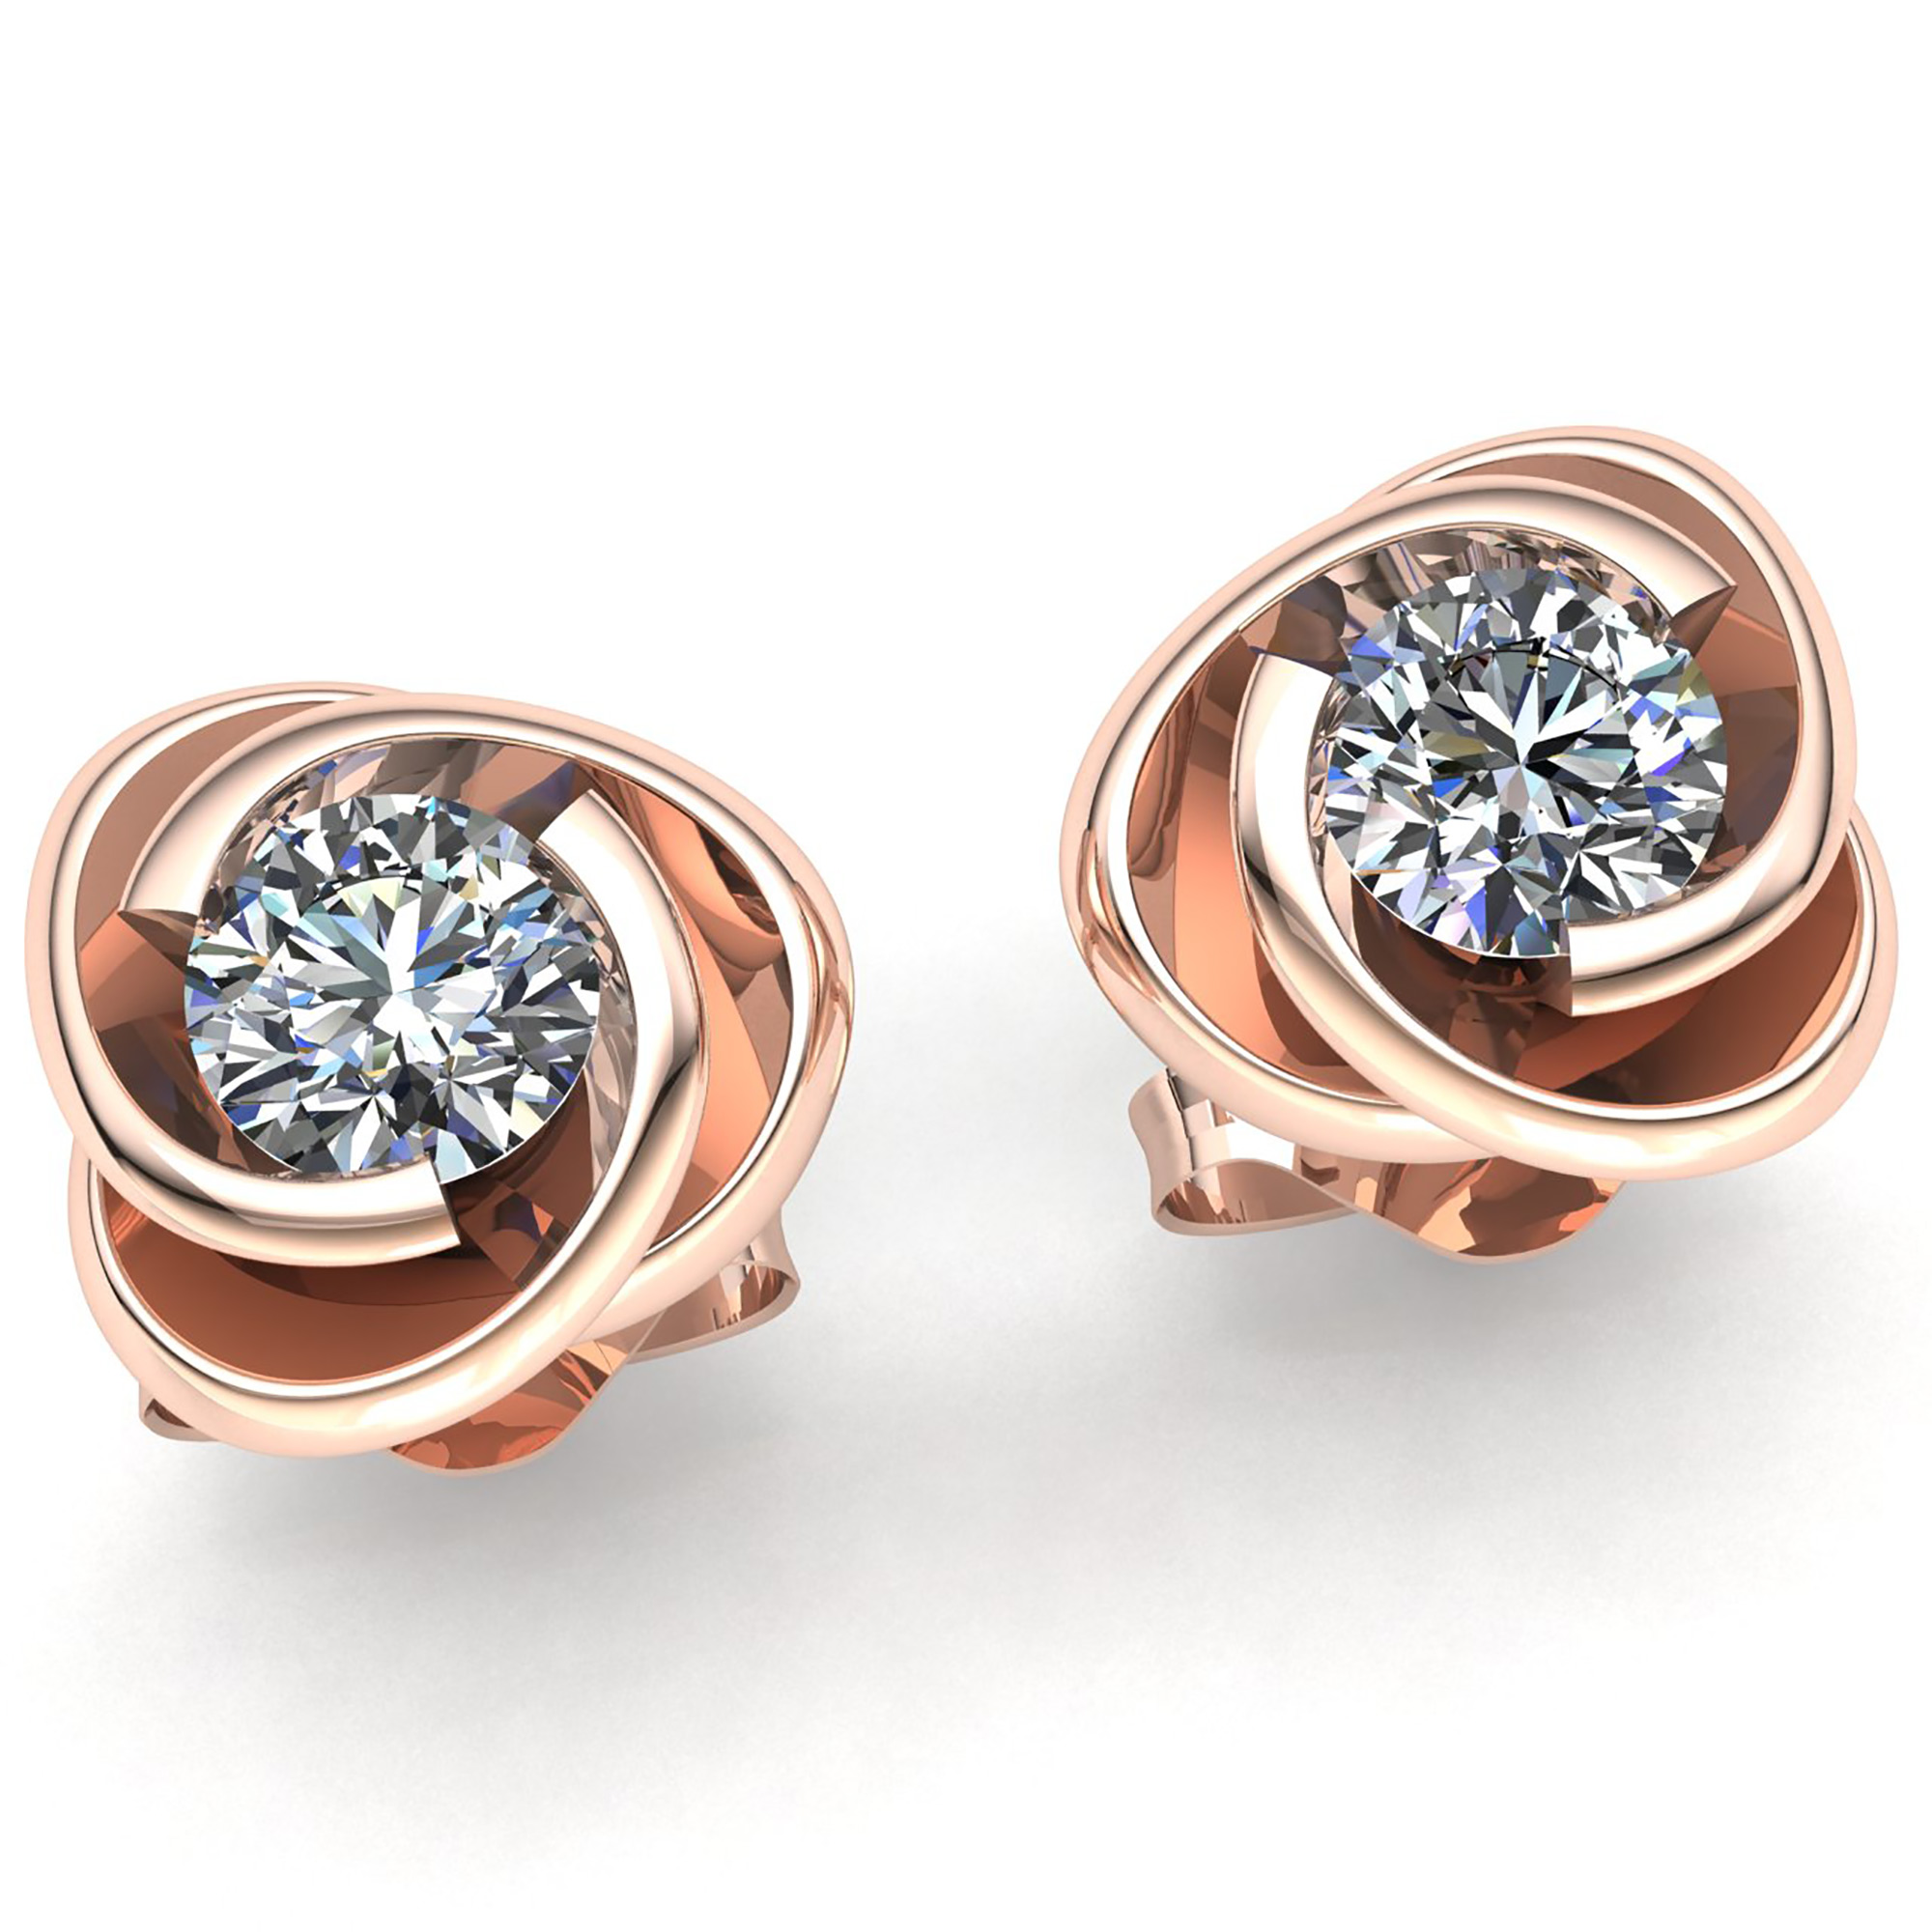 stud earrings diamond round gold prong watches back overstock product push shipping auriya today brown free jewelry tdw cut